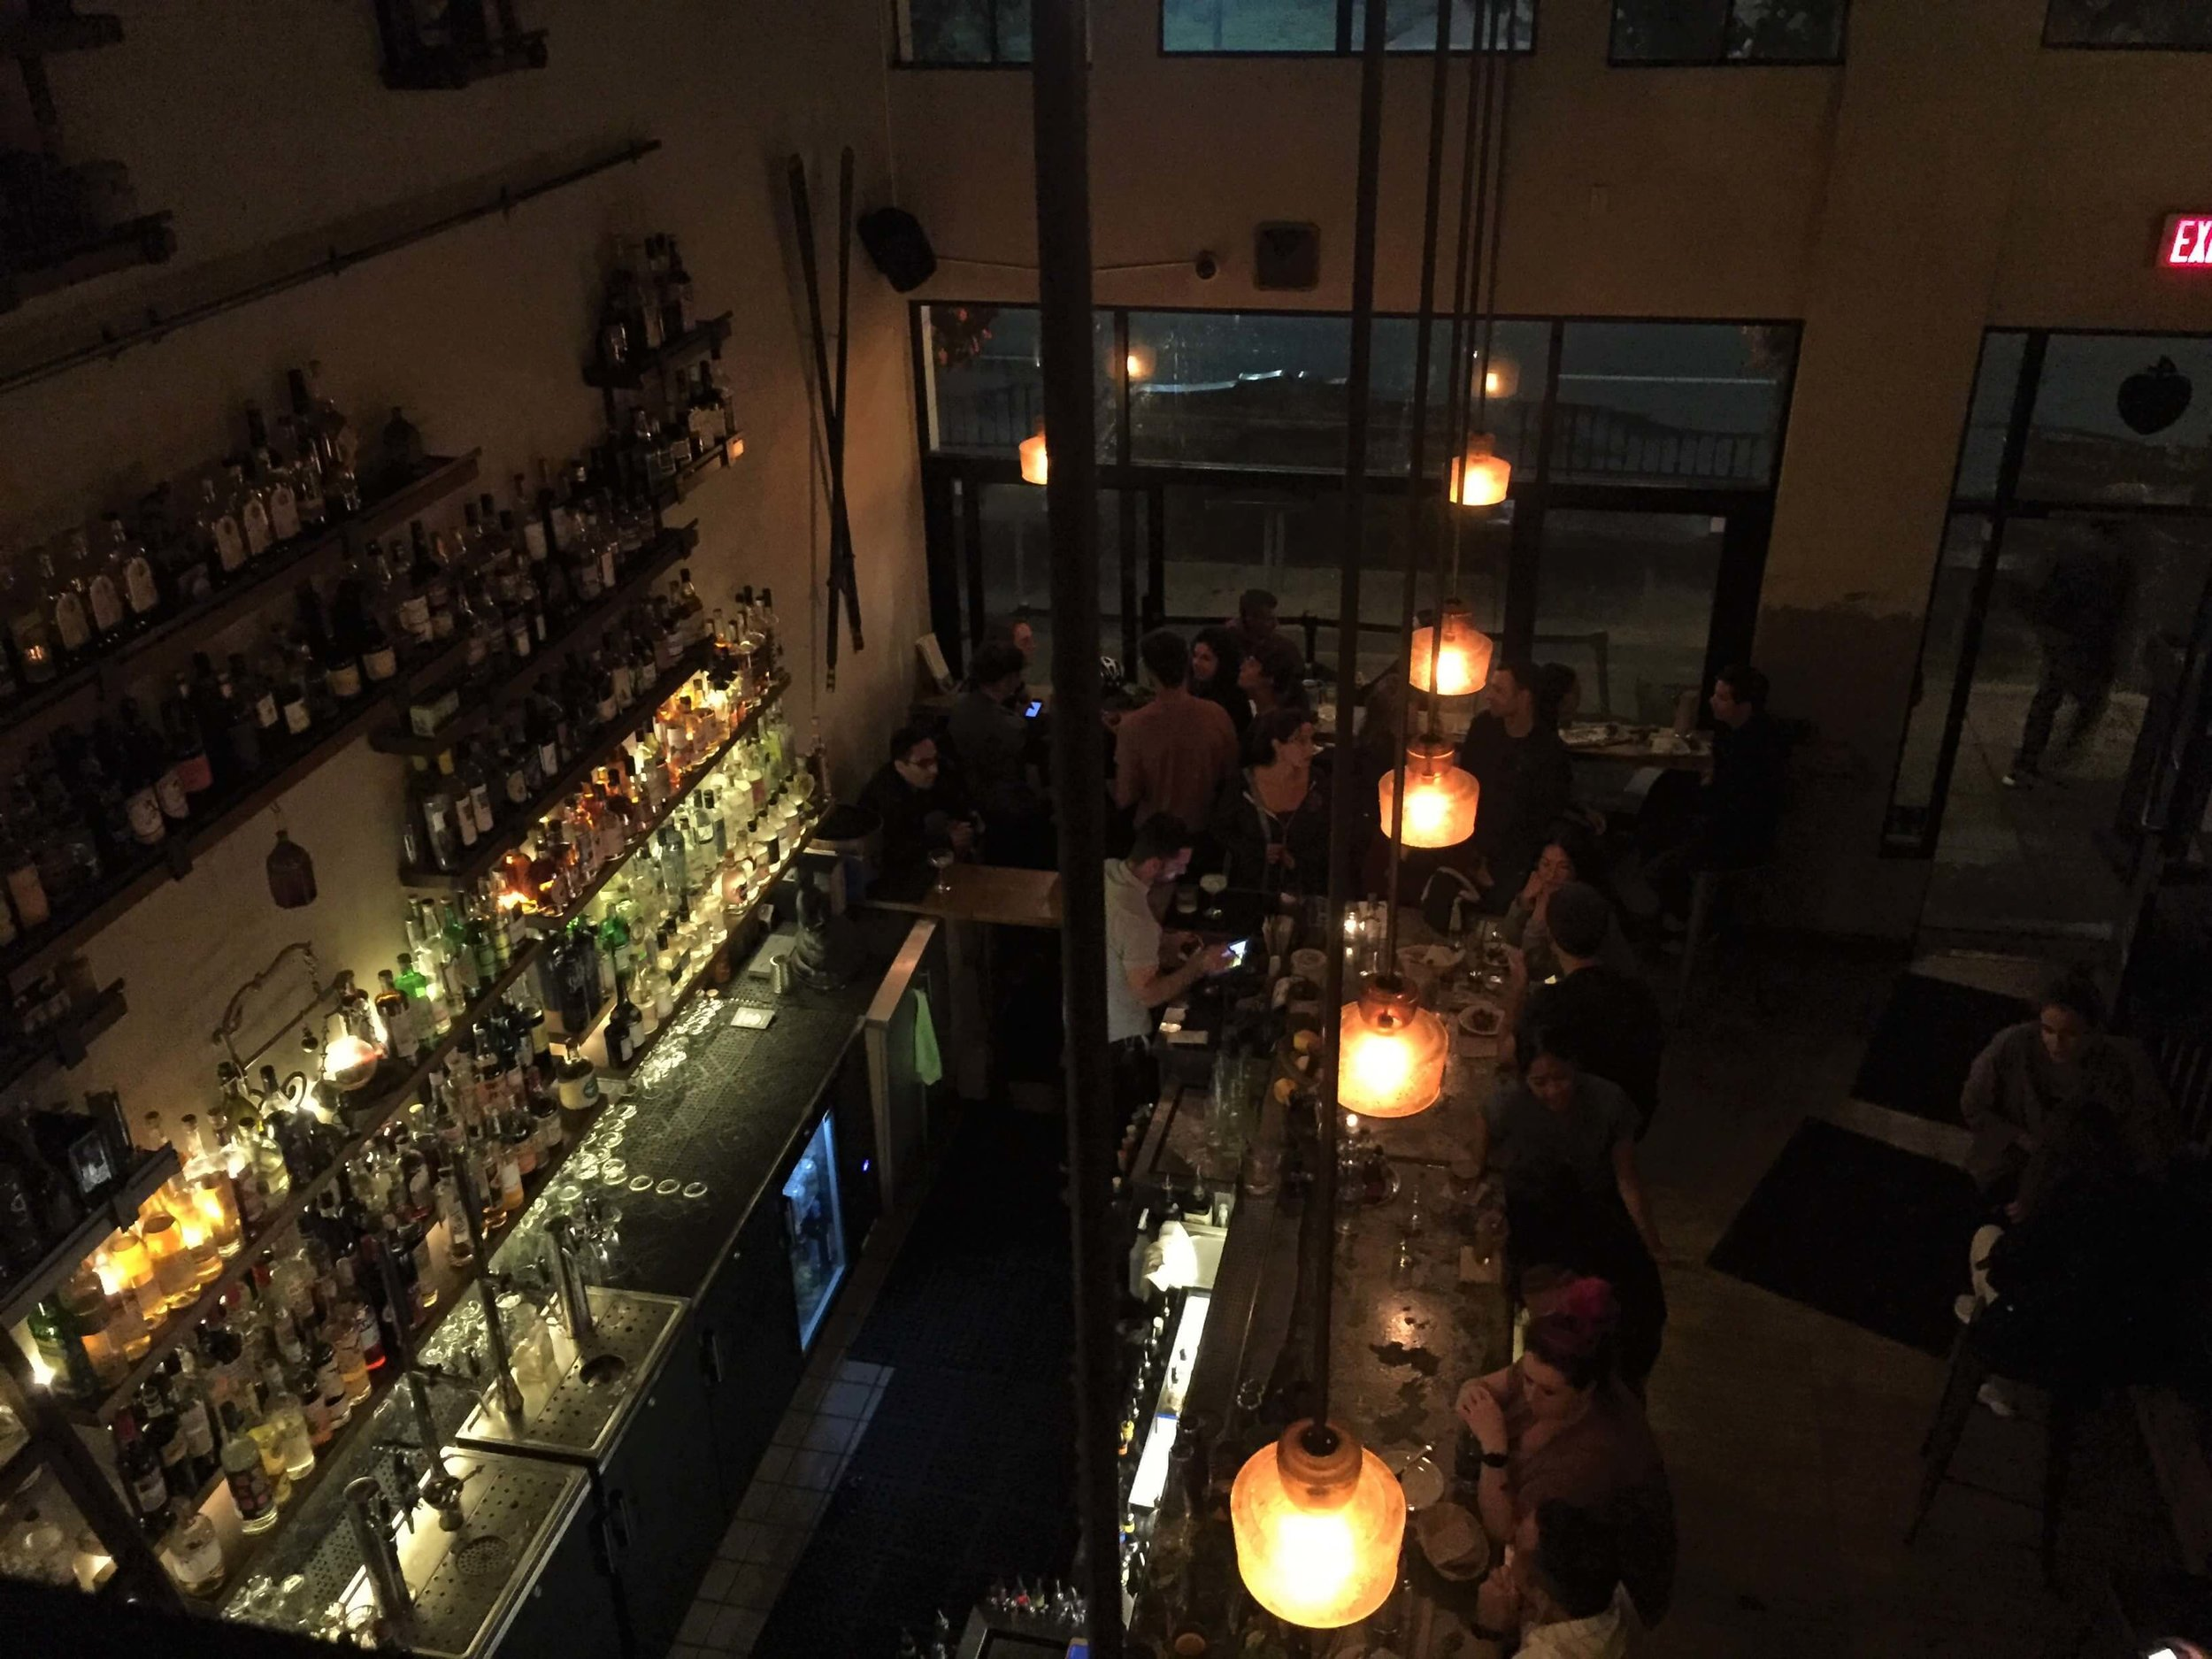 The view from the upper section of the East Bay Spice Company. Best bars in Berkeley.